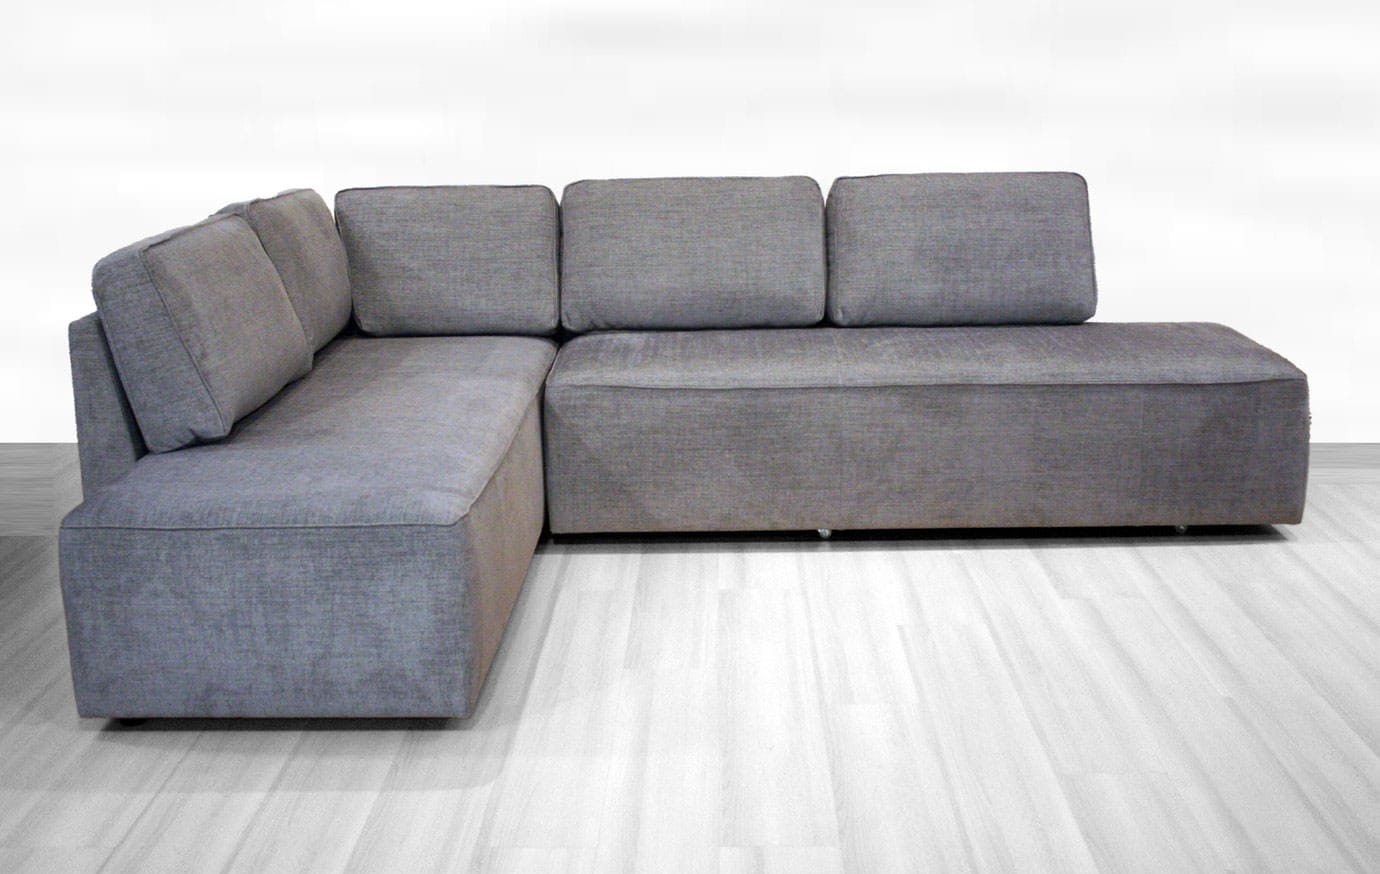 New York Sectional Sofa Sleeper (Queen Size) LHF by Luonto Furniture